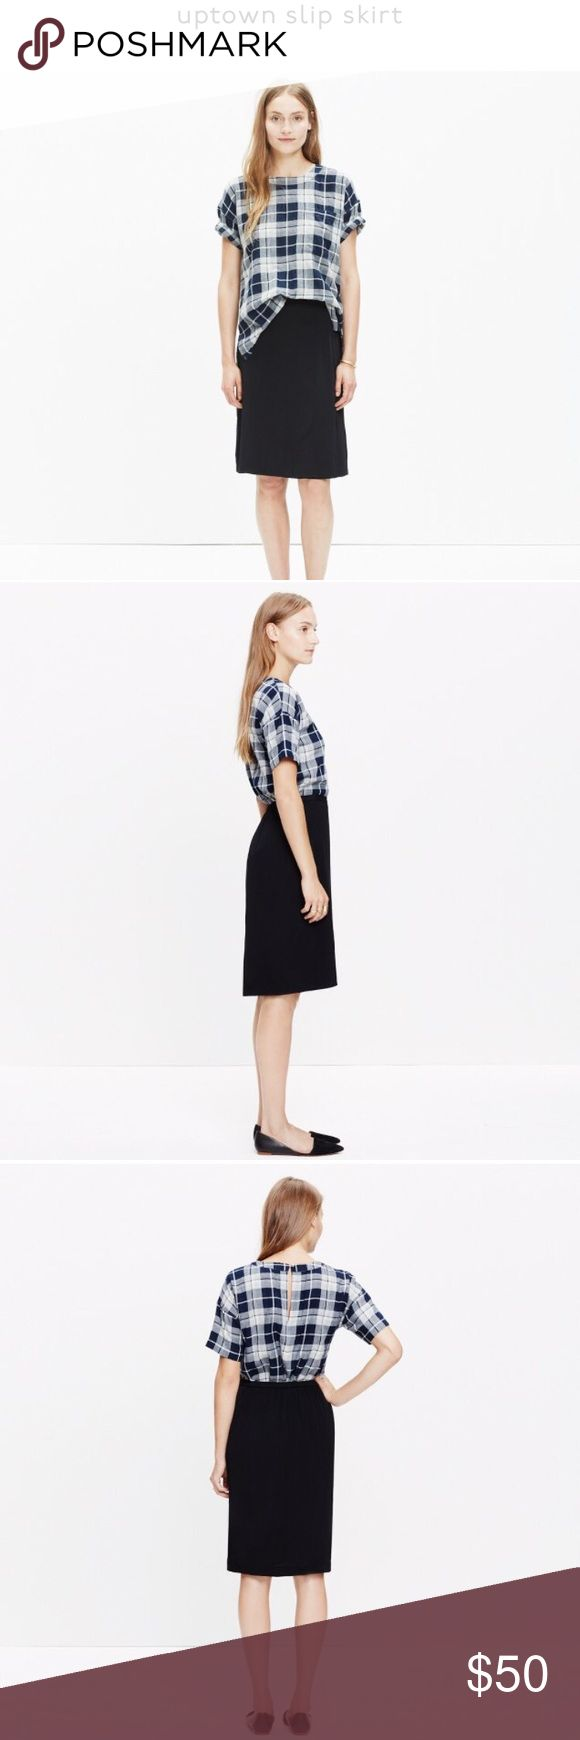 Madewell Uptown Slip Skirt NWT sleek slip skirt in a streamlined midi style. Elasticized back waist. A-line skirt. Measurements (laying flat): waist 30 inches, length 24 inches. Materials: 100% viscose (lining is 100% polyester). Dry clean. Madewell Skirts Midi